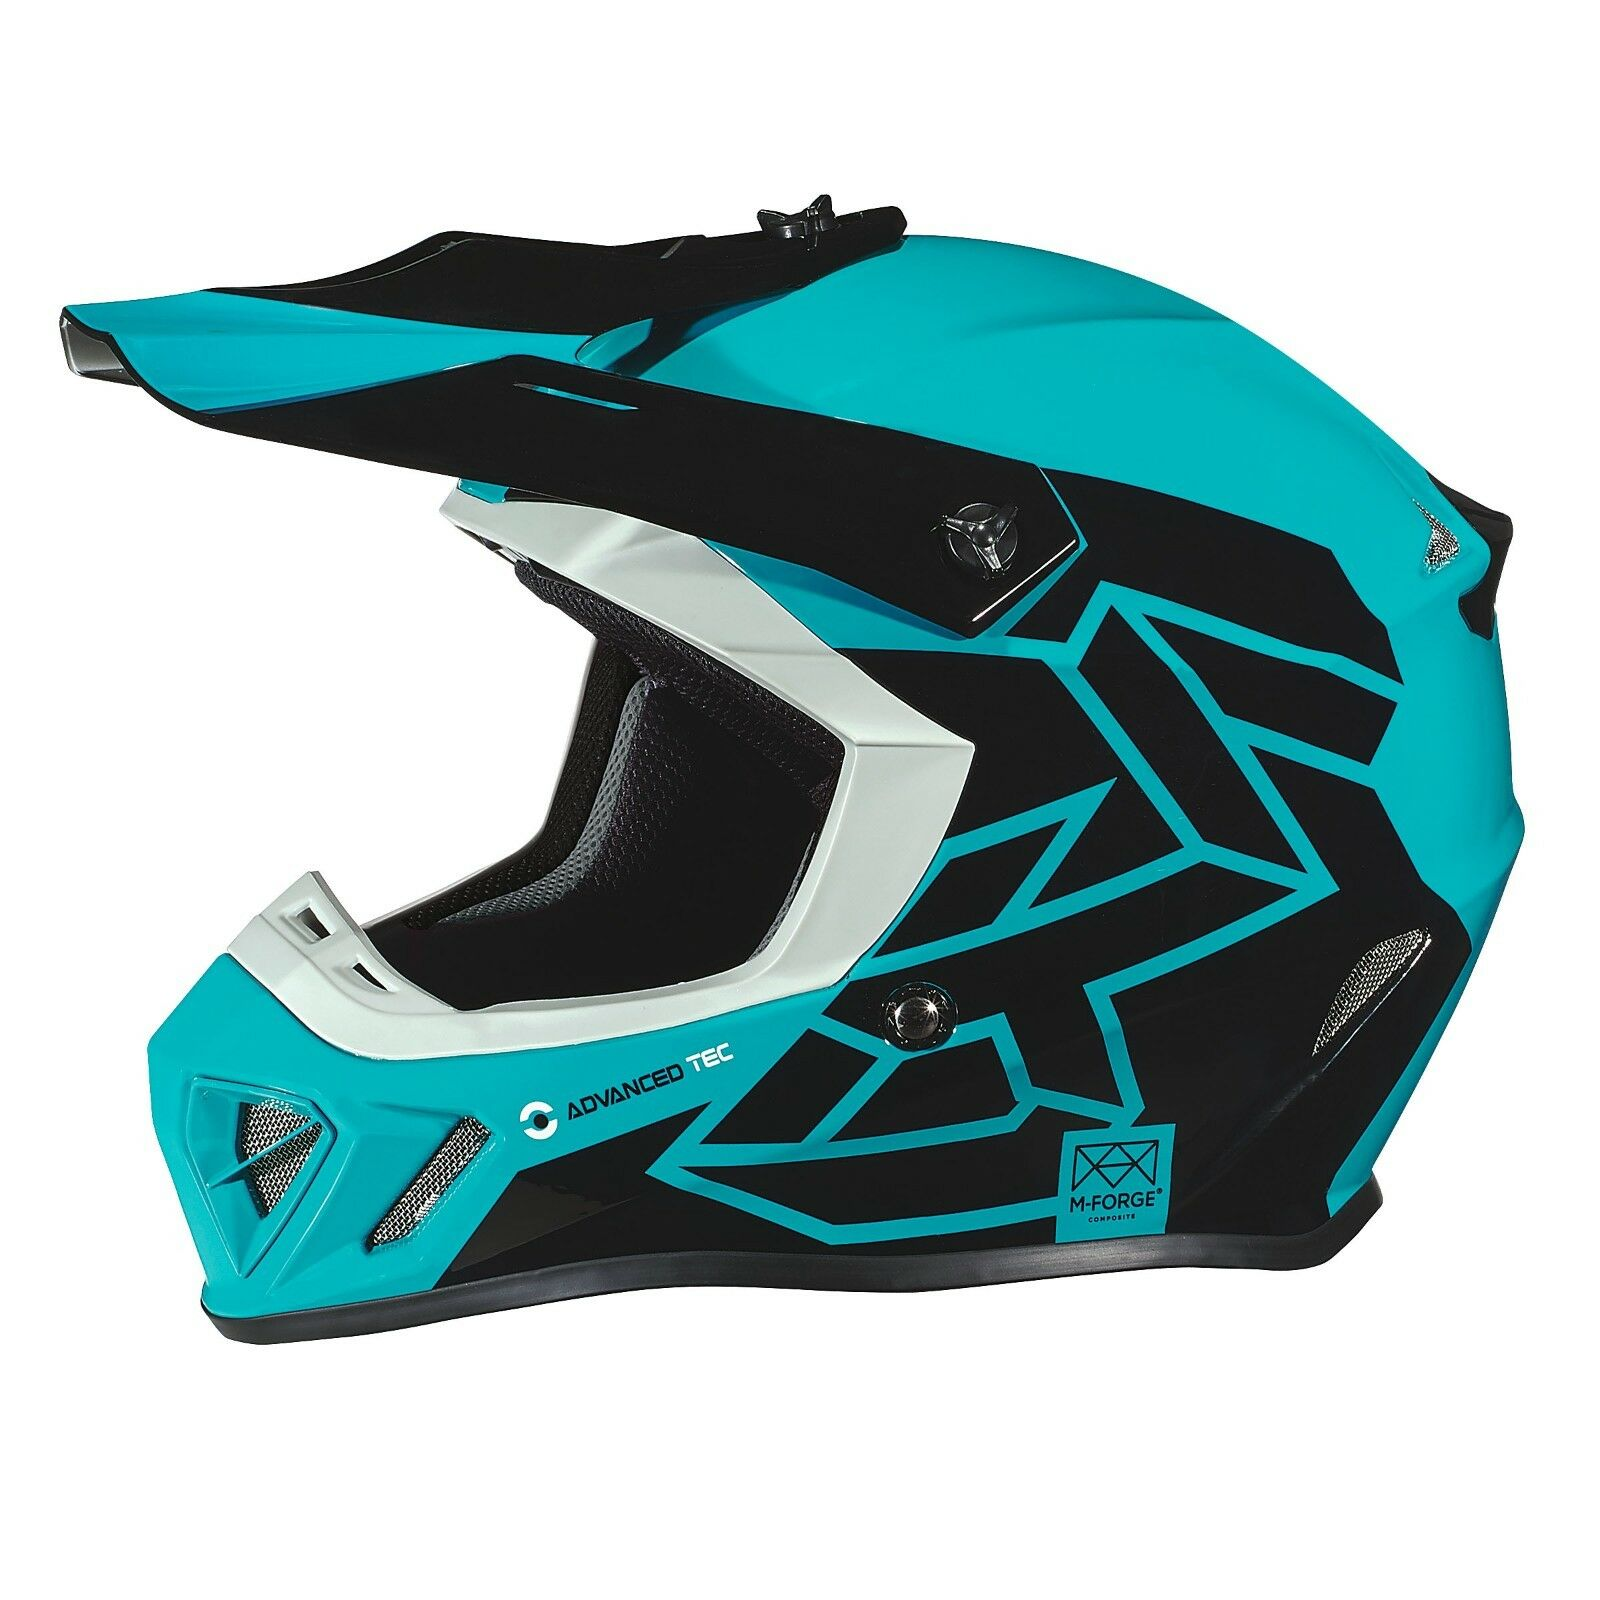 2019 SKI-DOO XP-X ADVANCED TEC HELMET 4485610674 MEDIUM M TEAL   high quality